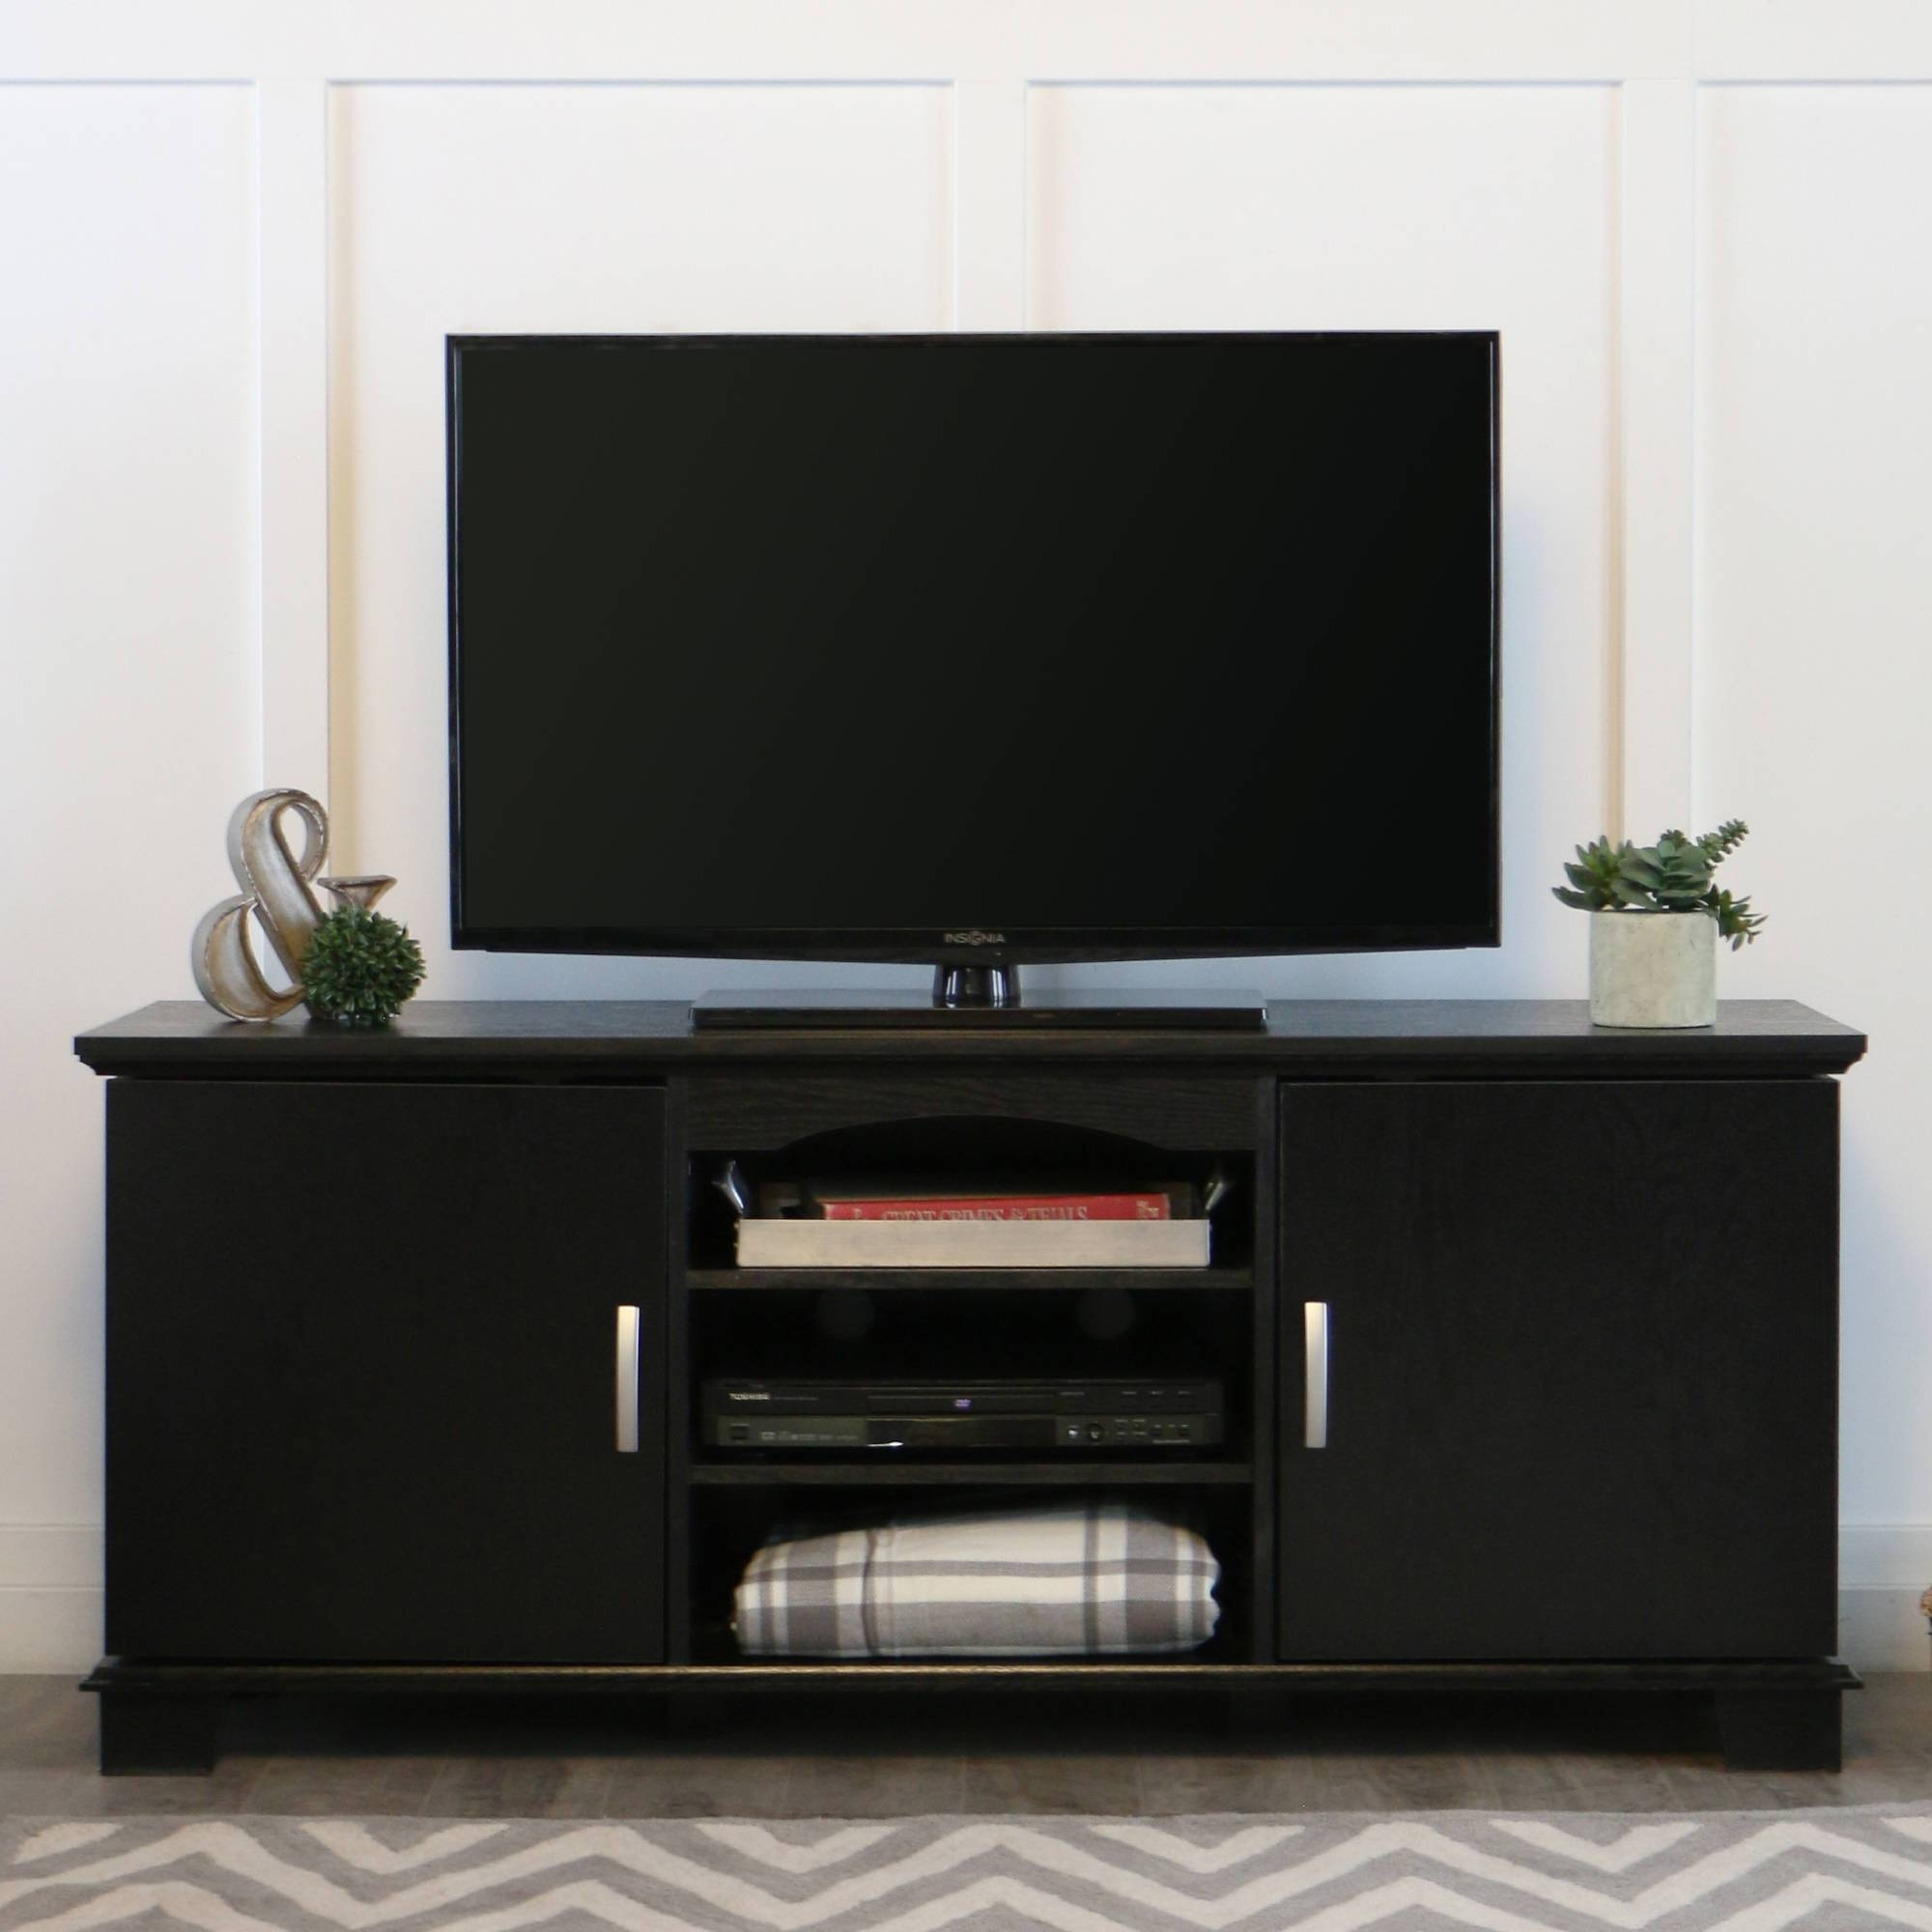 Beautiful Low Black Tv Unit 79 In Modern Home With Low Black Tv Throughout Large Black Tv Unit (View 3 of 15)